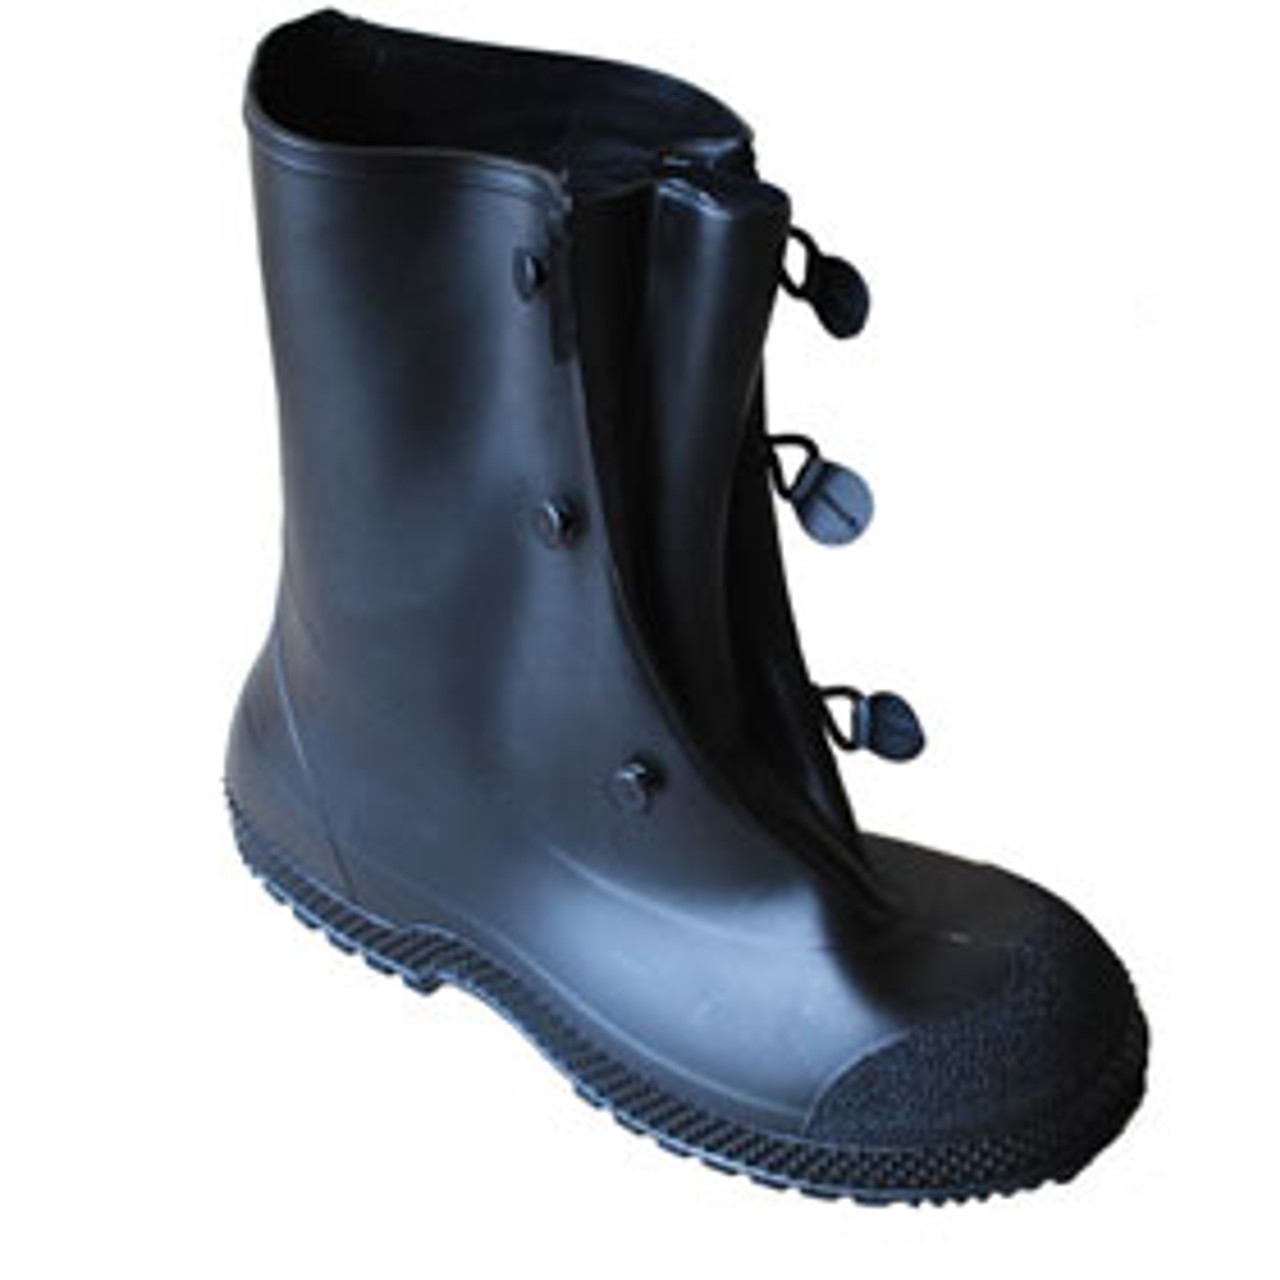 SF Chemical Overshoes